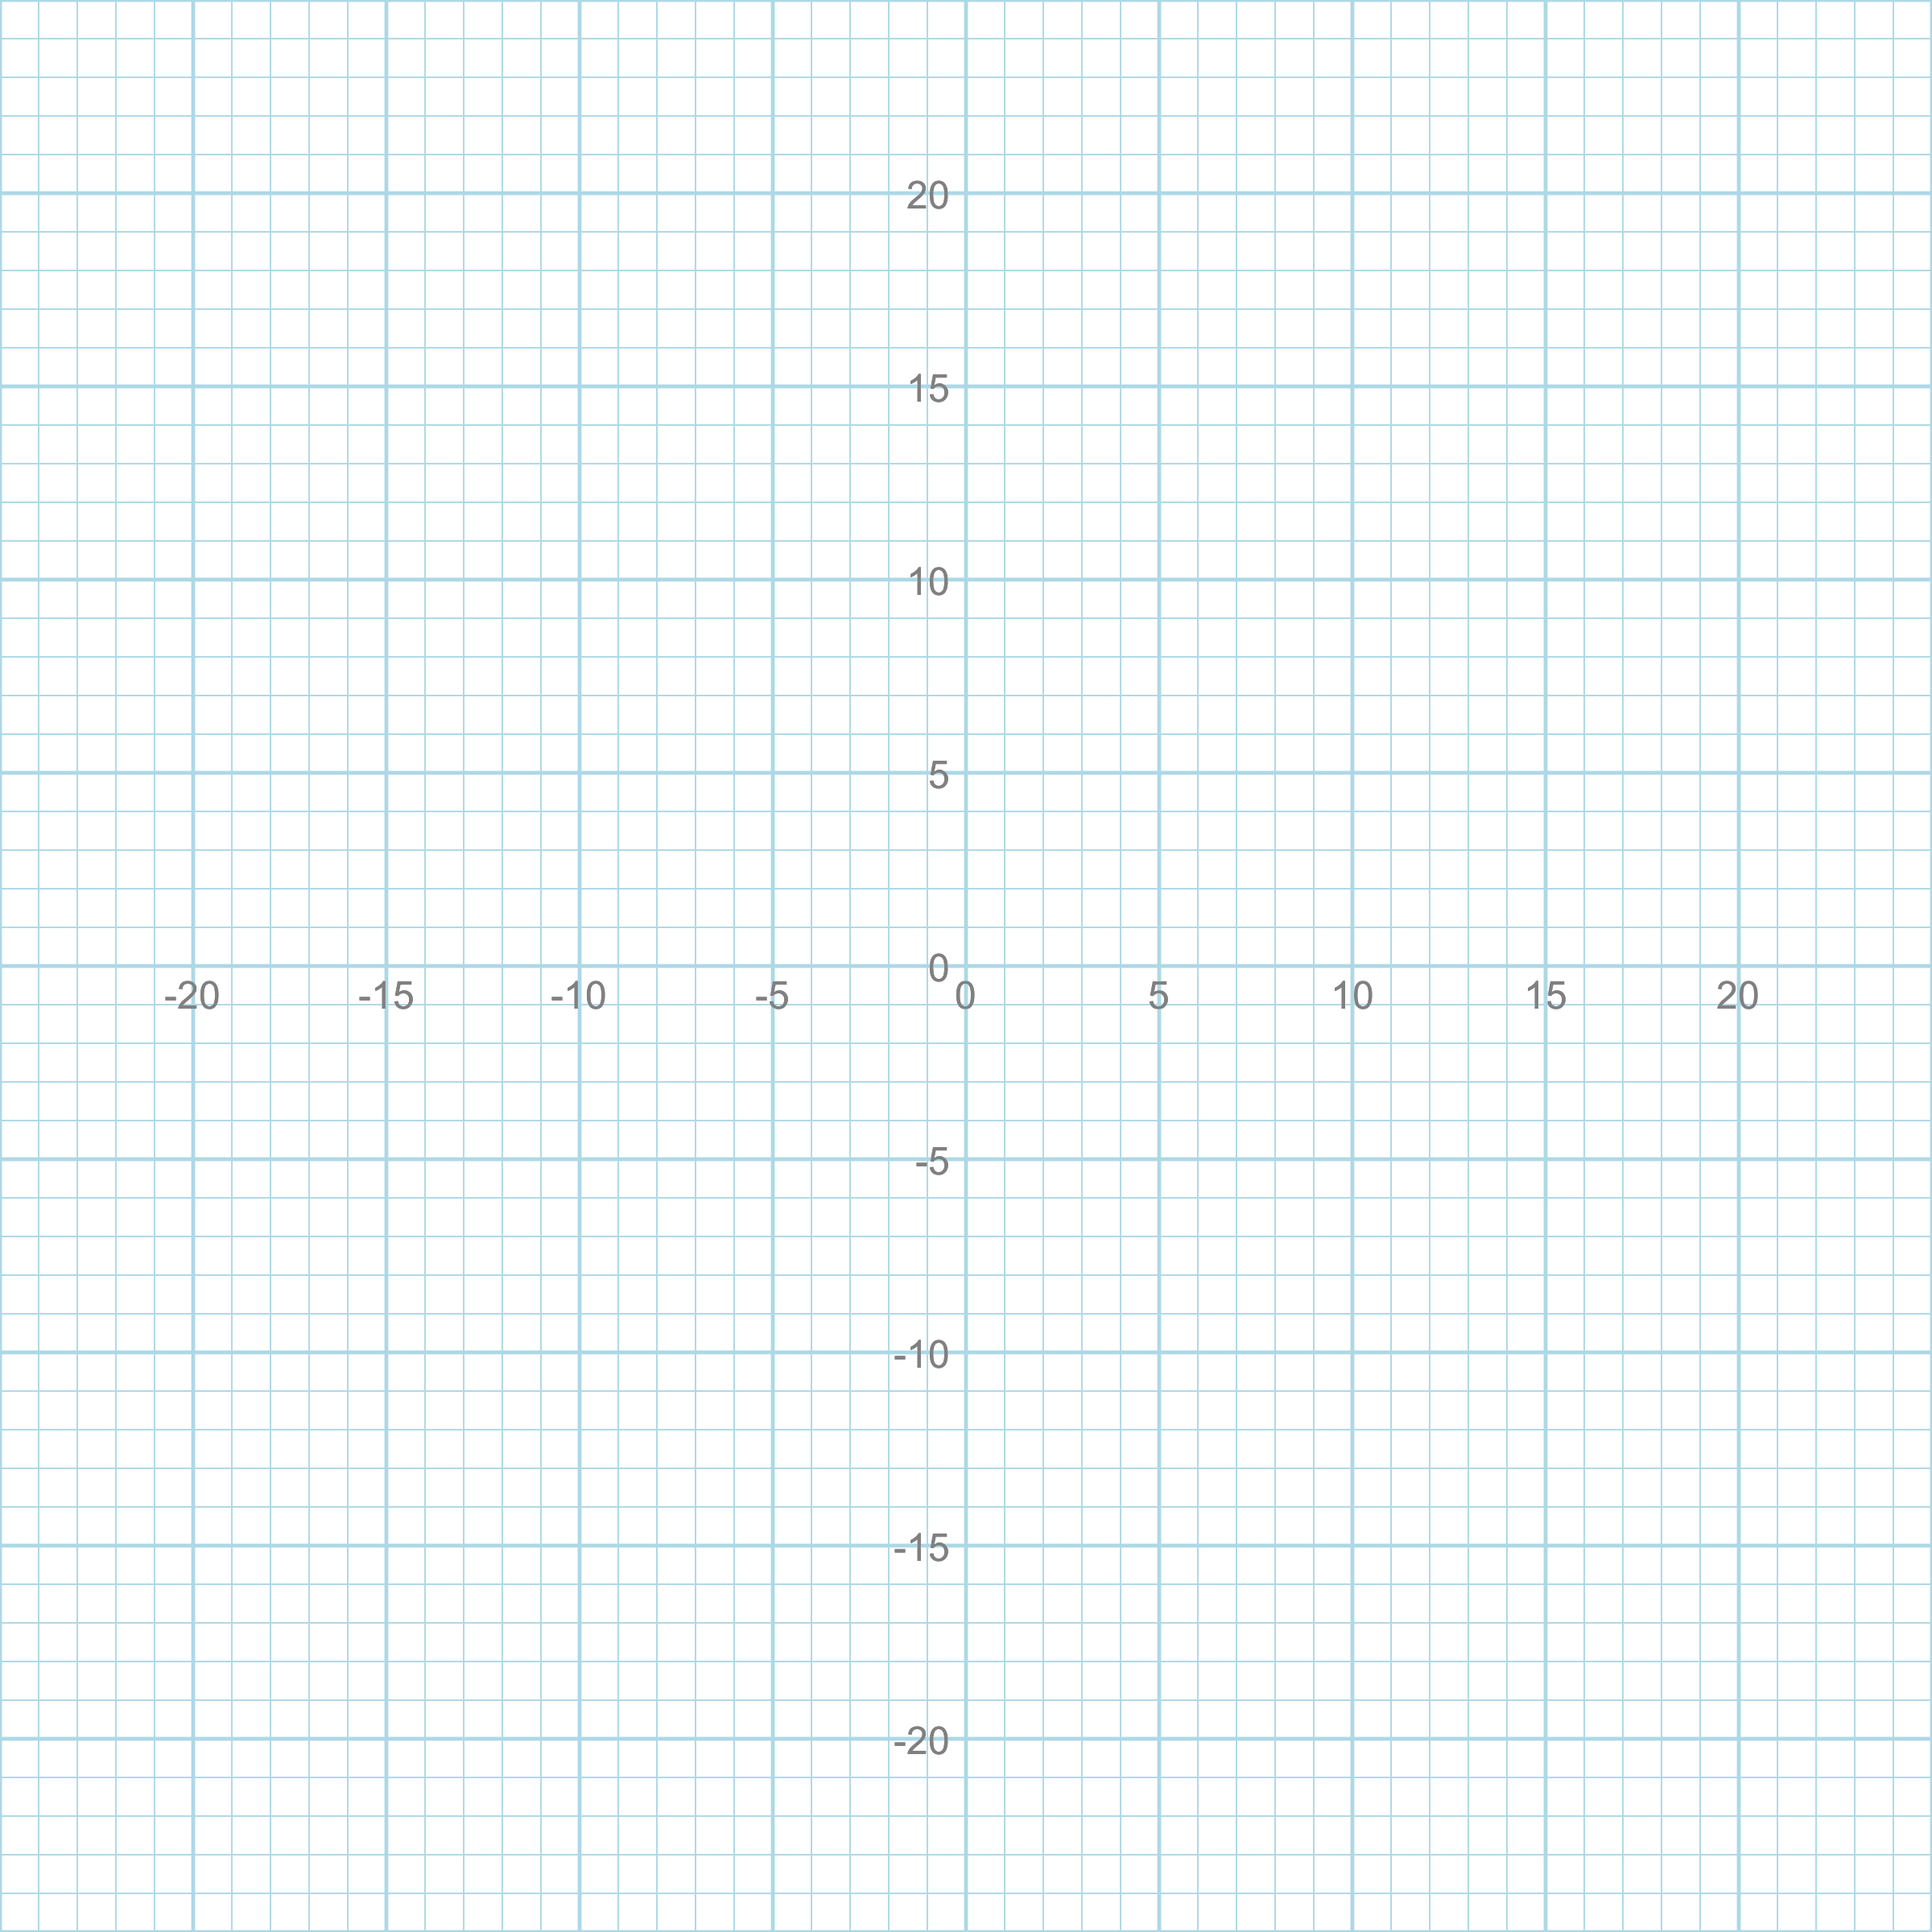 search results for graph paper printable 8 5 11